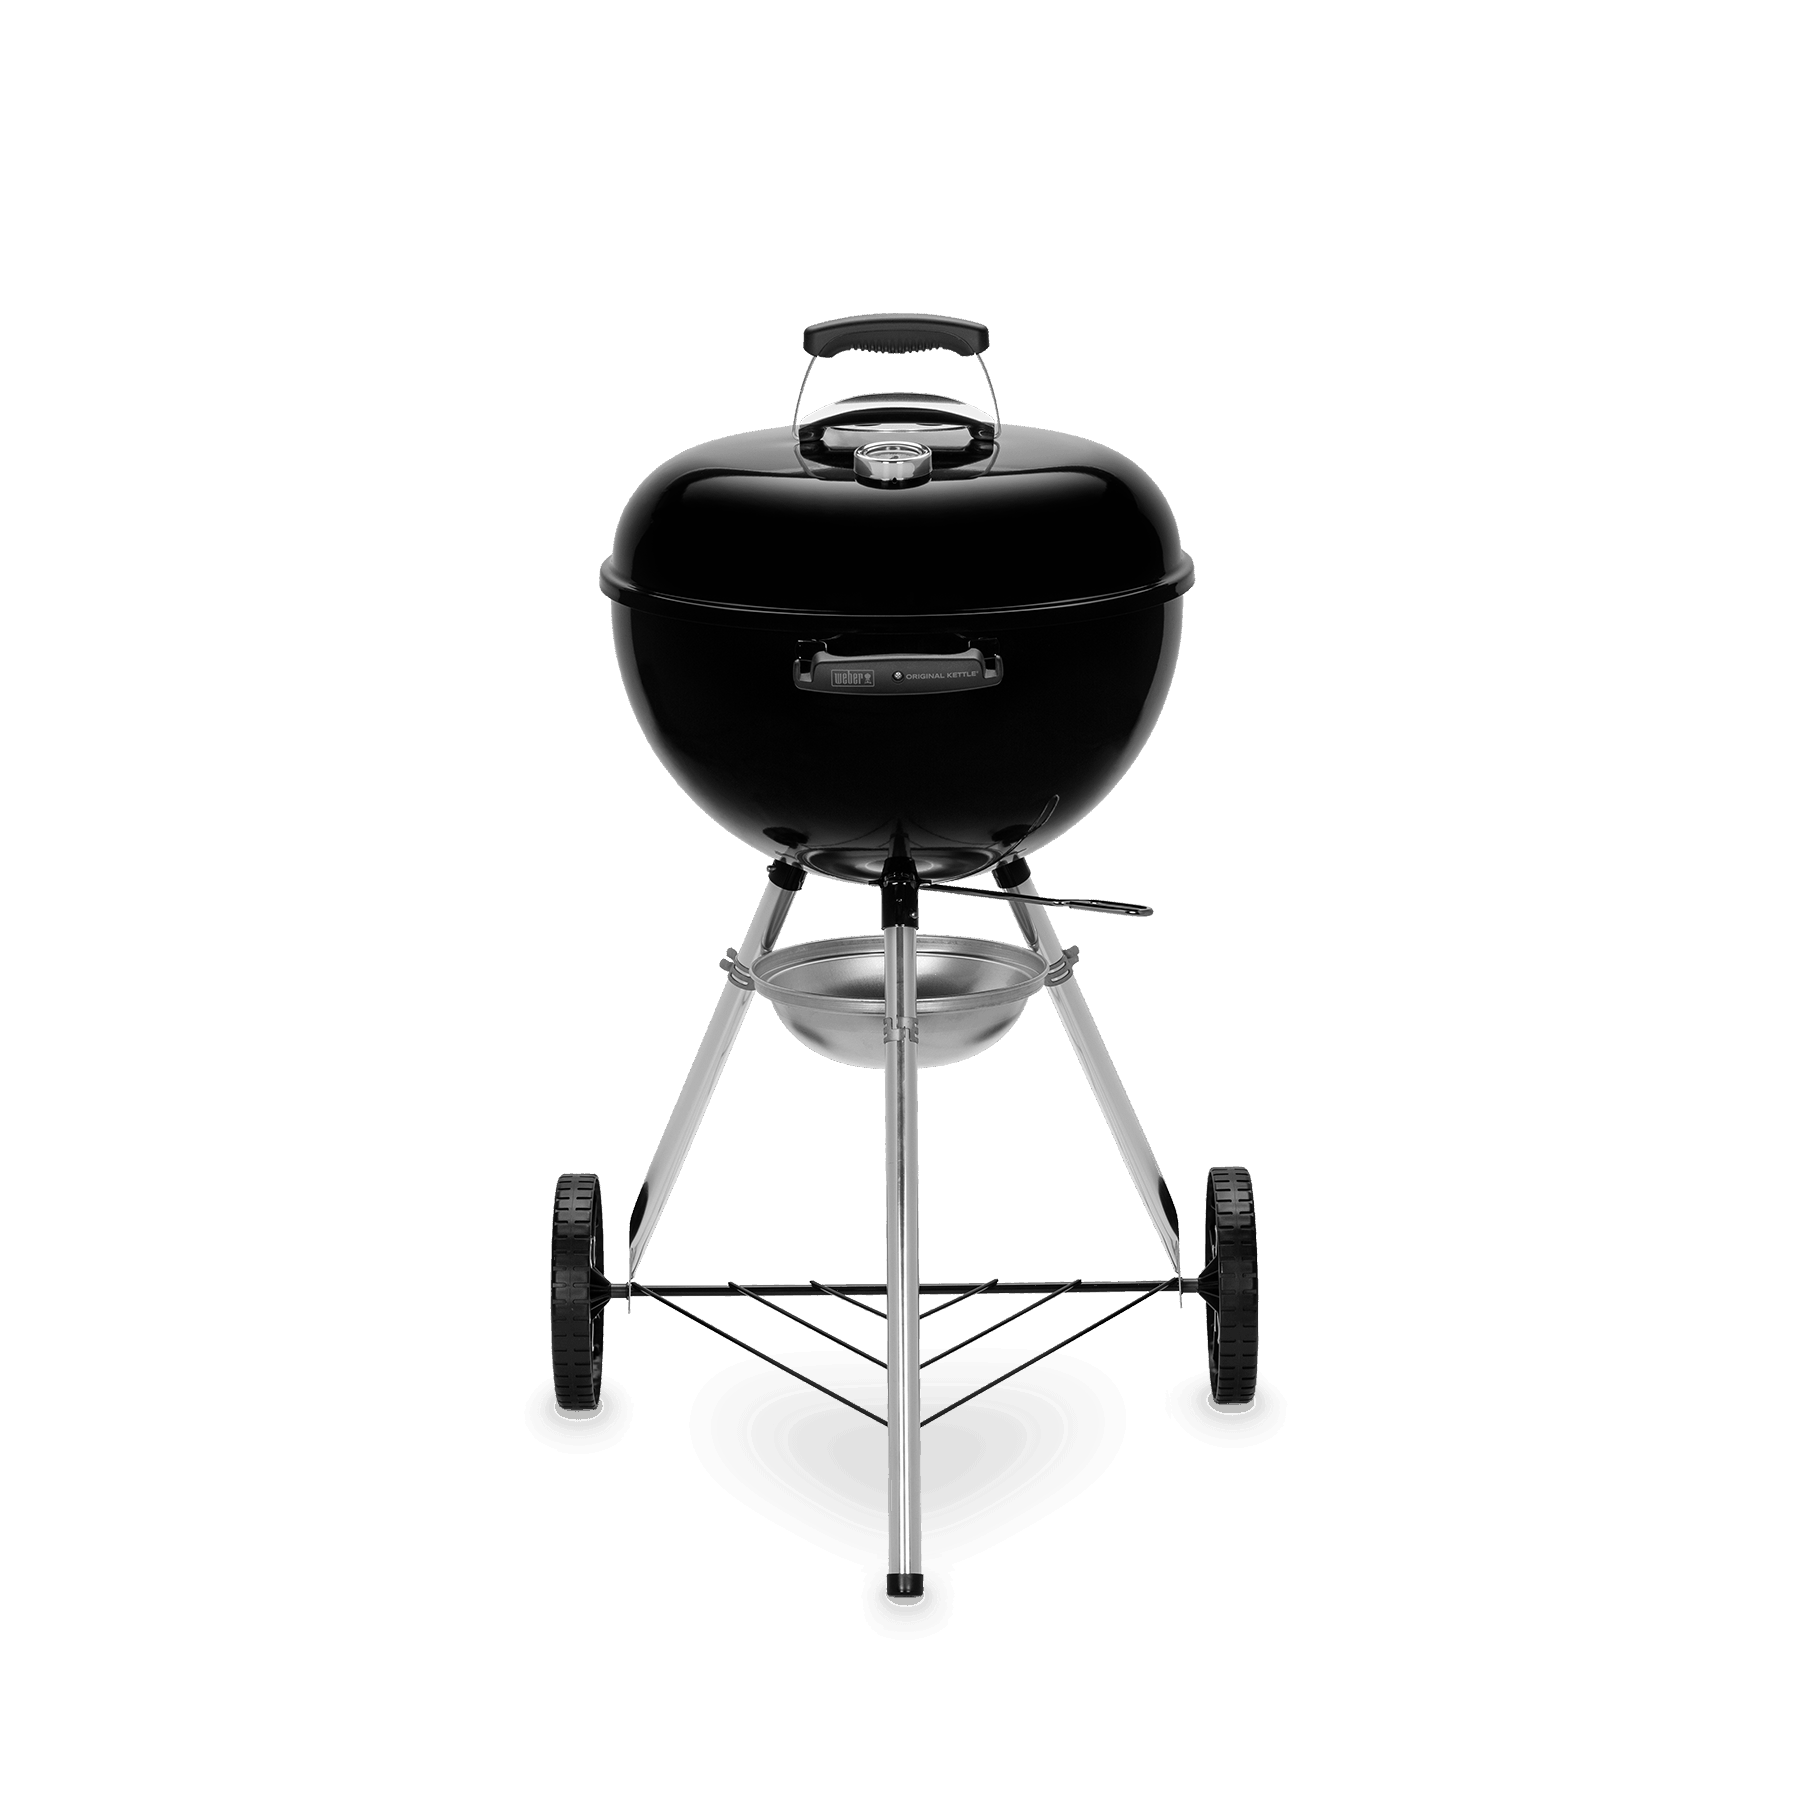 Original Kettle E-4710 Kulgrill 47 cm